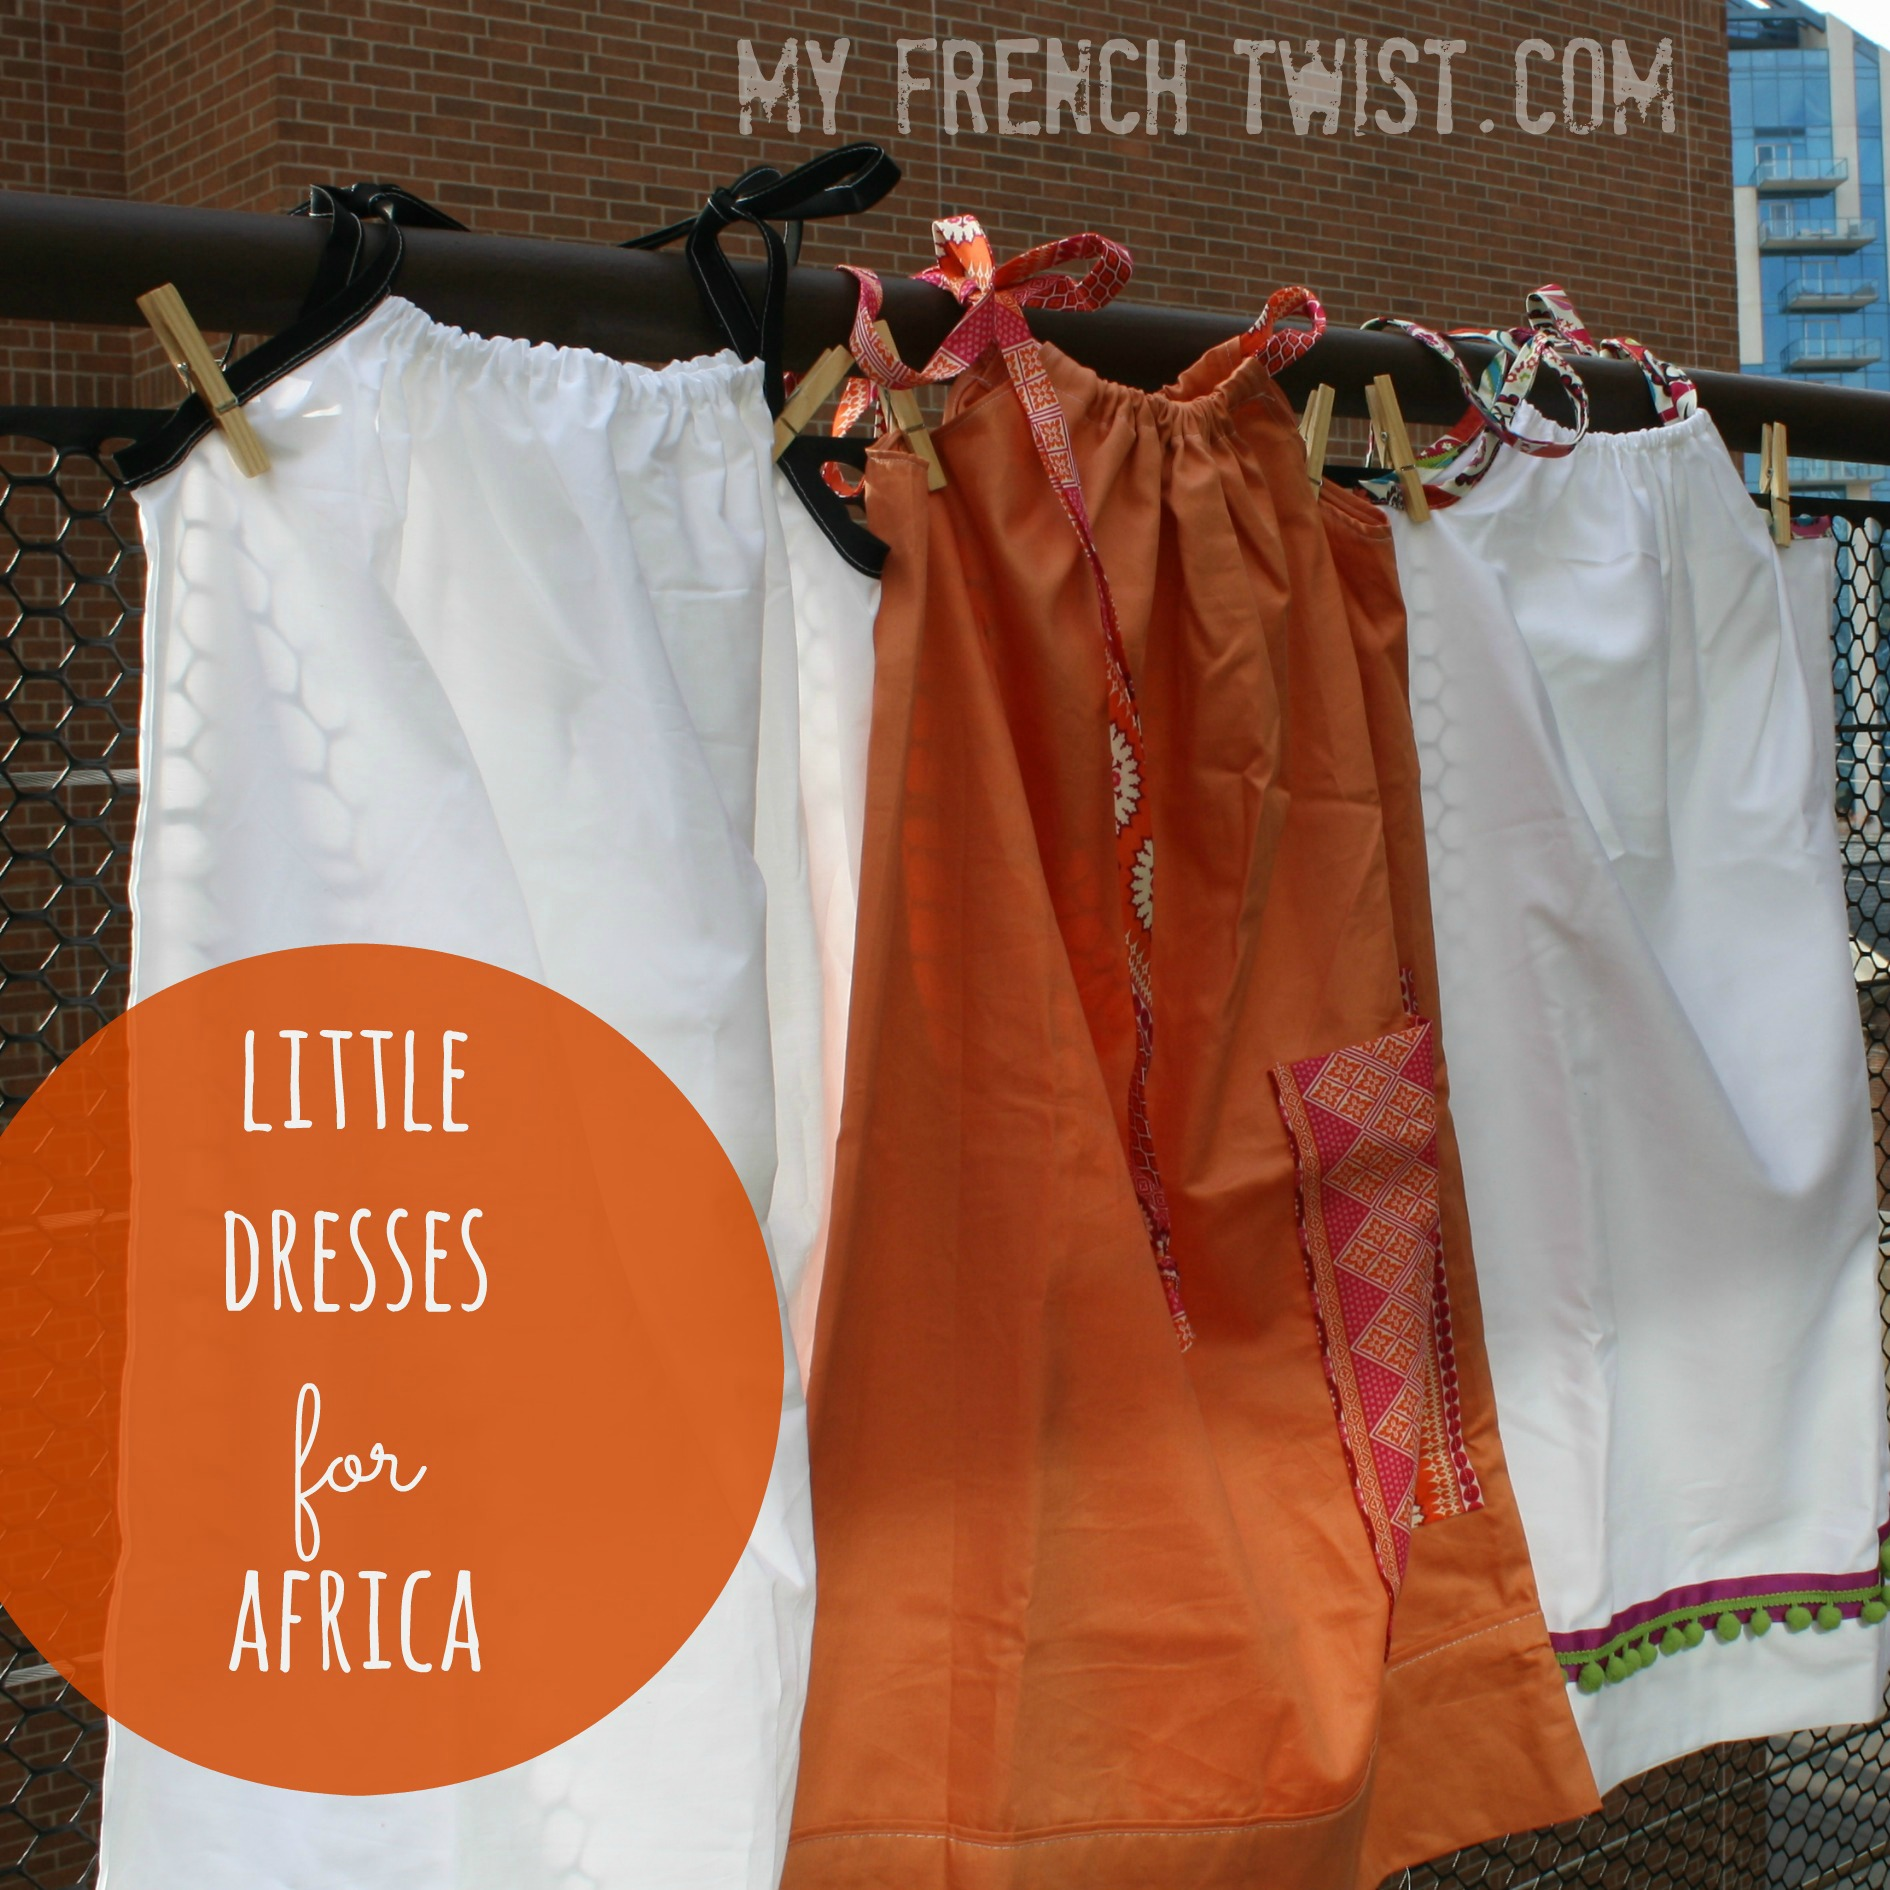 little dresses for africa - myfrenchtwist.com